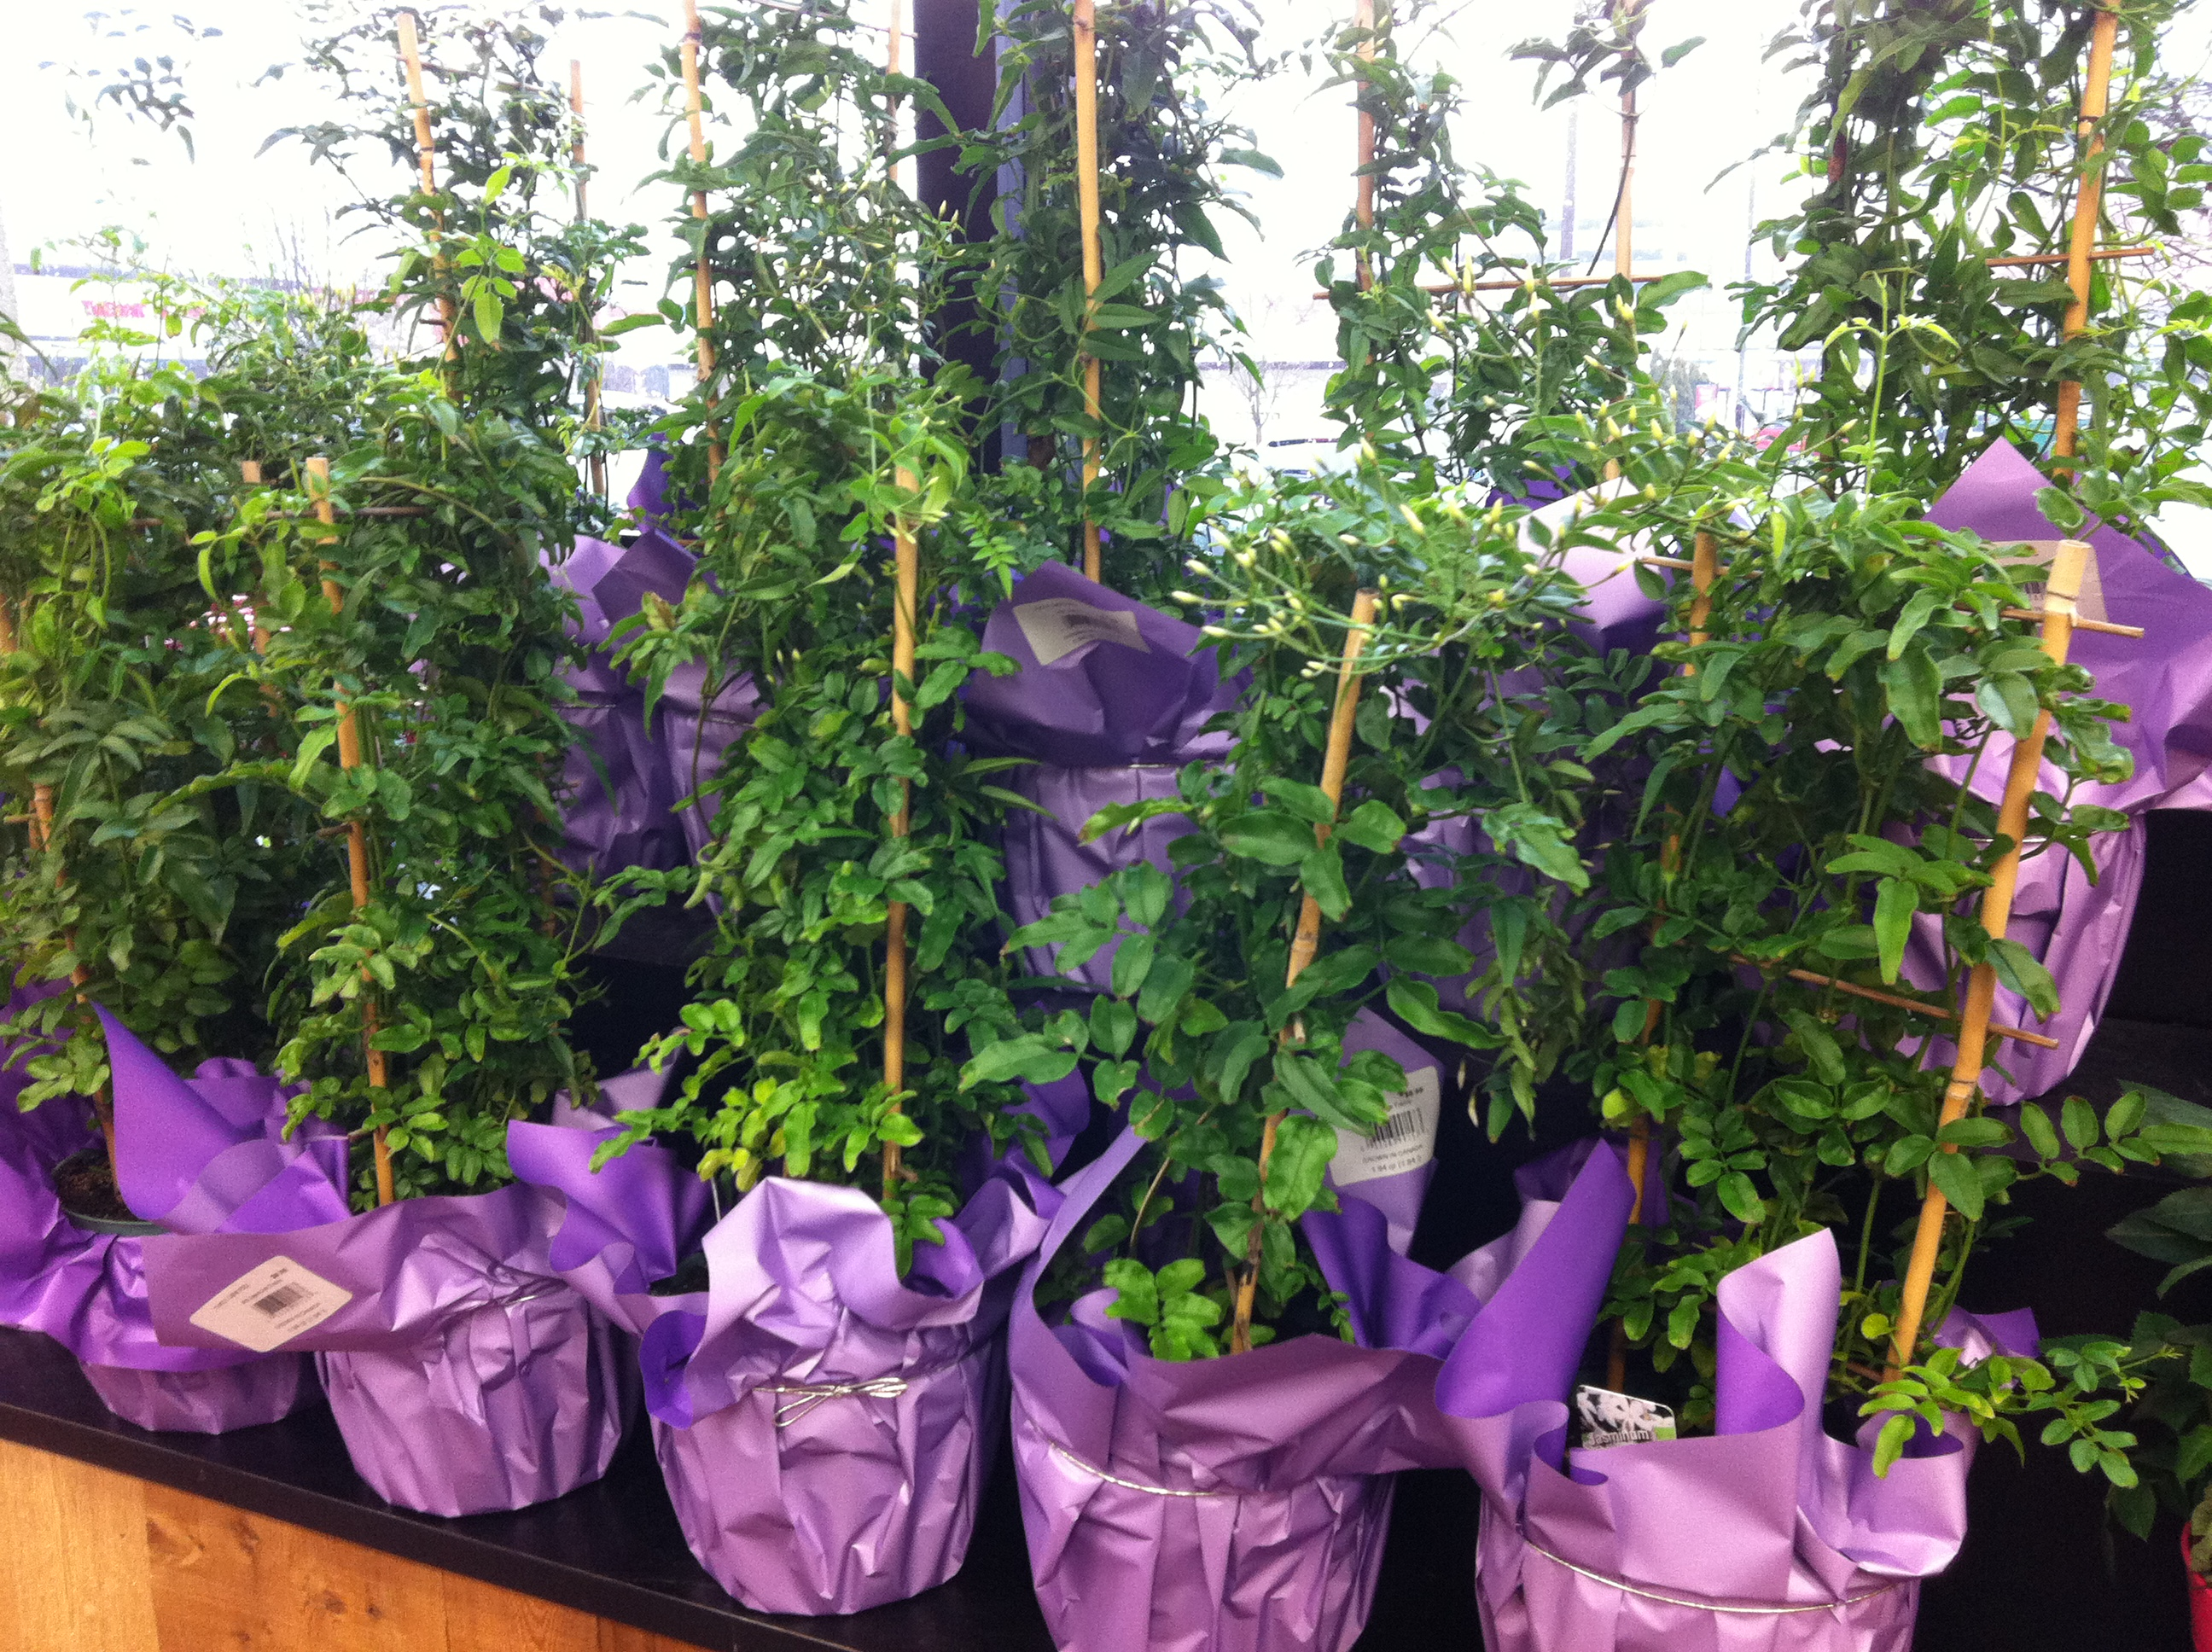 Jasmine plants for sale at trader joes the pittsburgh mommy blog i love filling my wintertime windows with different types of plantsfrom shamrock plants to bonsai trees to poinsettas to herbs to hanging vegetables izmirmasajfo